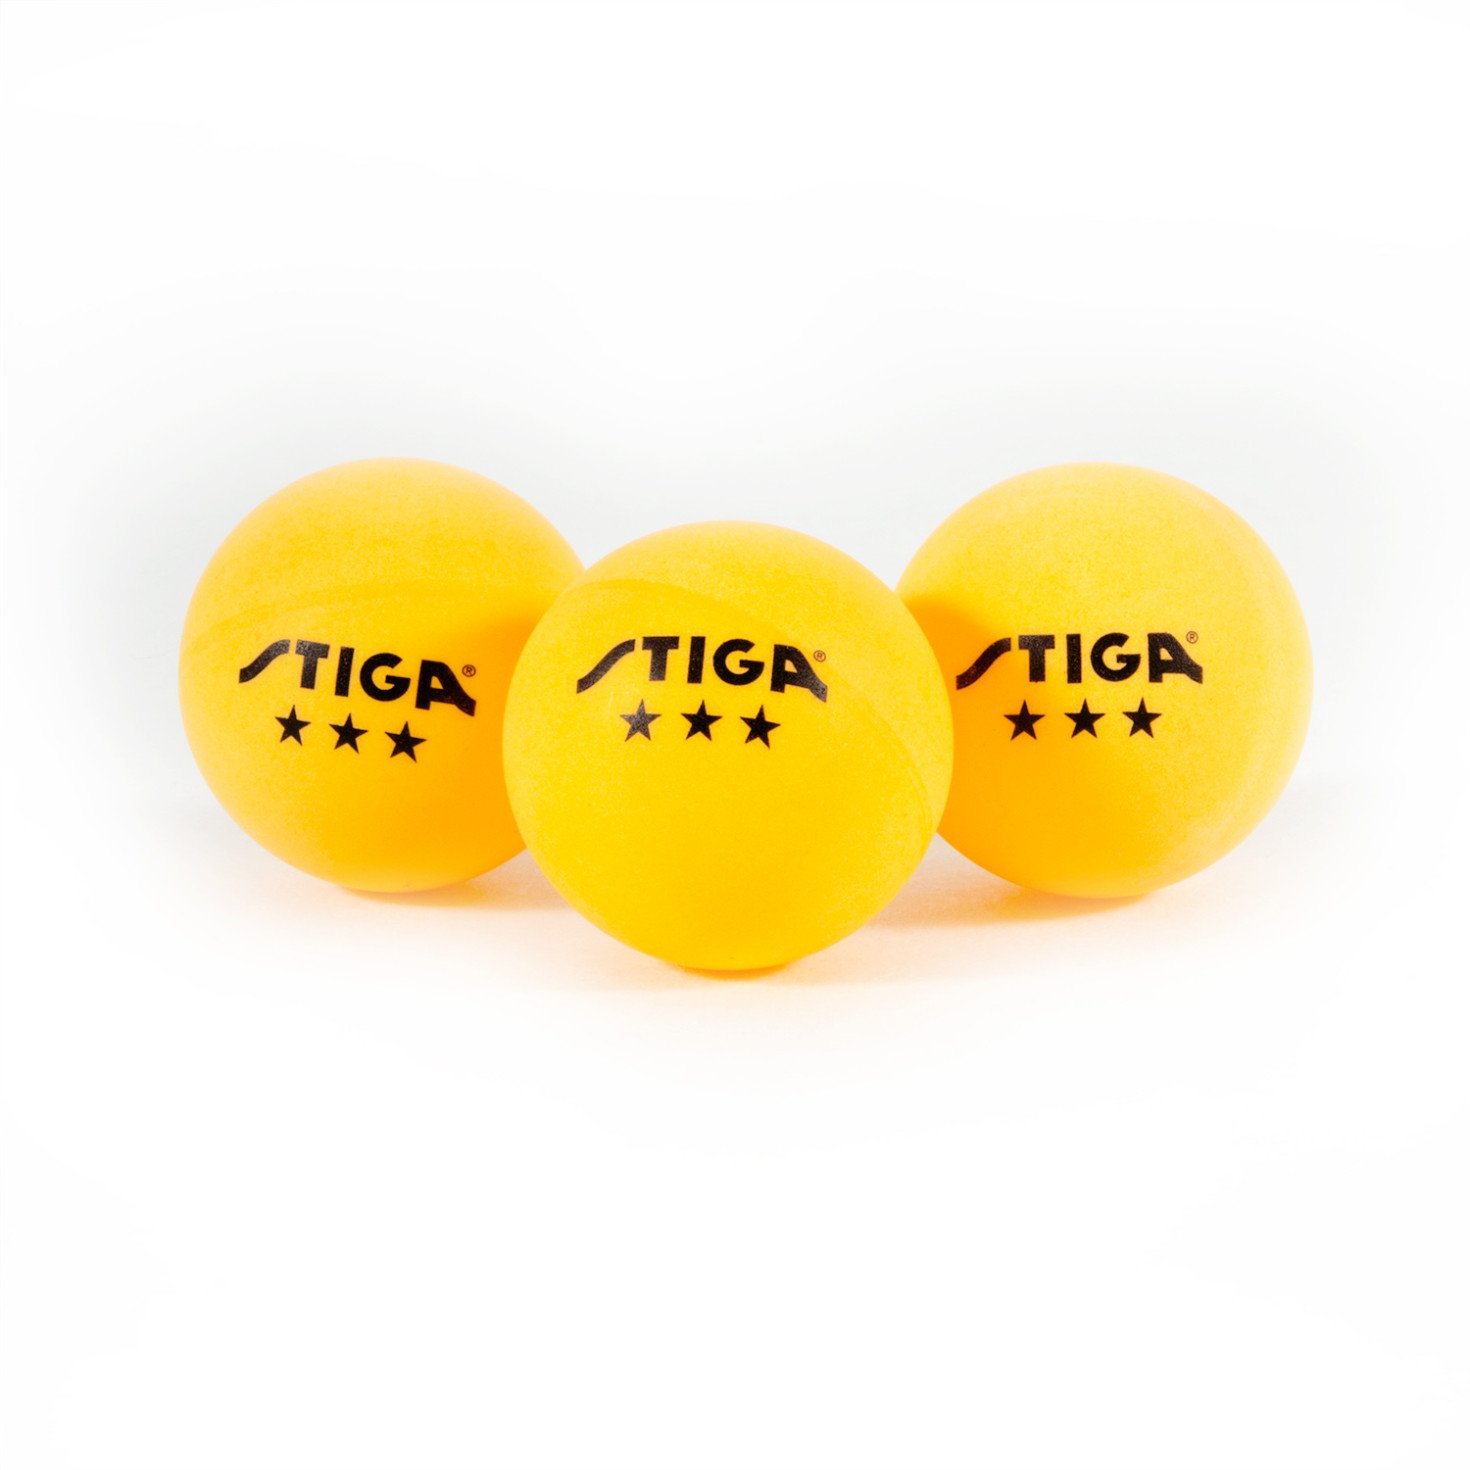 STIGA Performance 4-Player Table Tennis Racket Set with Inverted Rubber for Increased Ball Control and Added Spin by STIGA (Image #9)